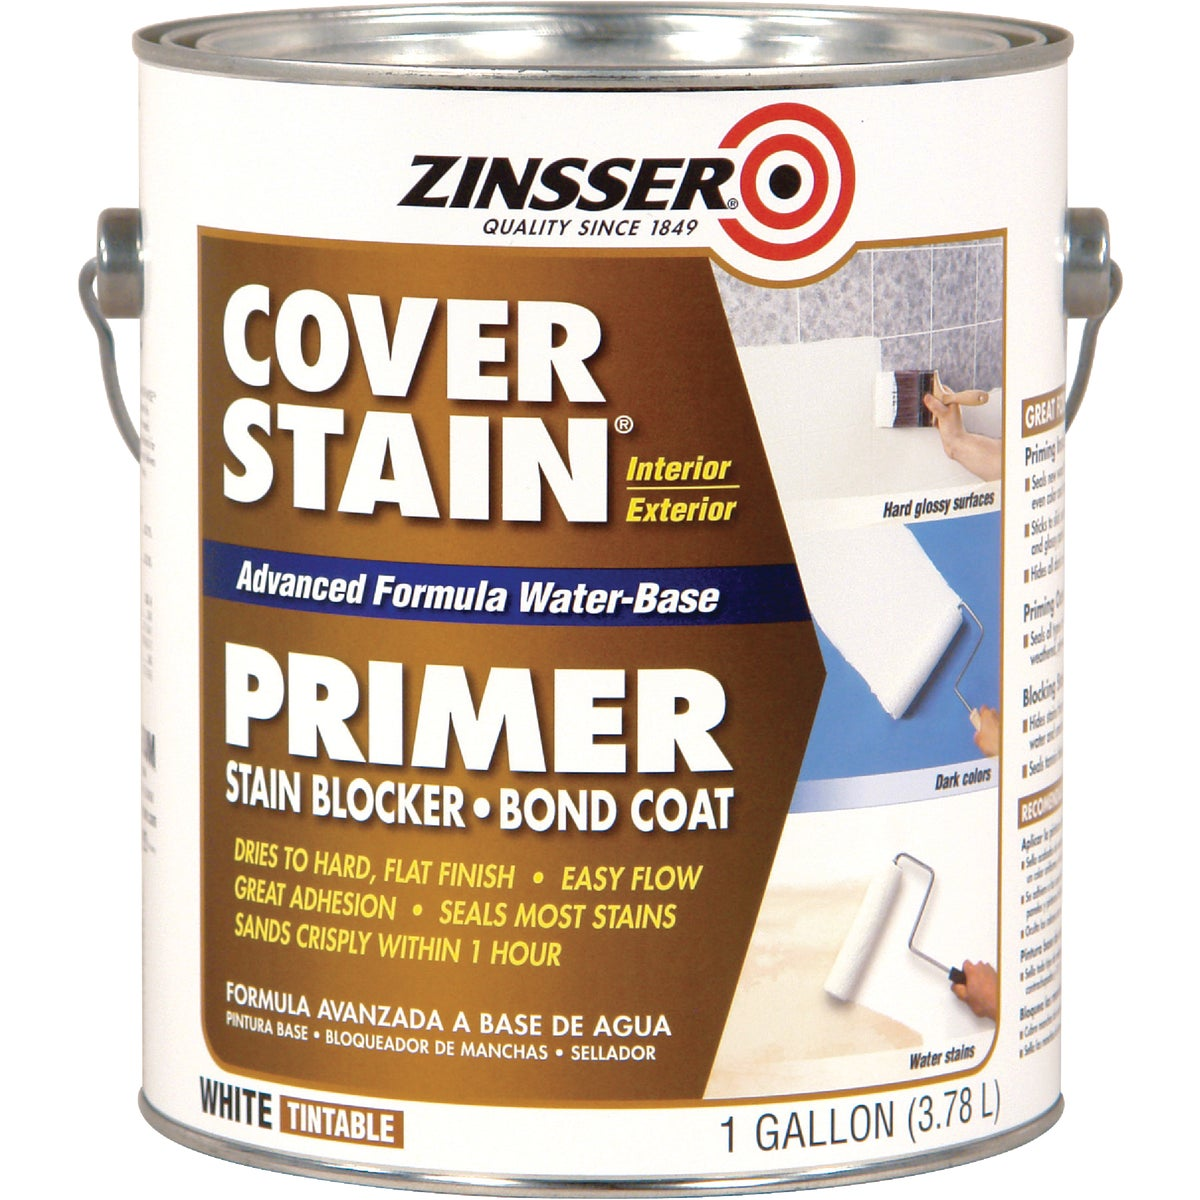 W/B COVER STAIN PRIMER - 257017 by Wm Zinsser Co